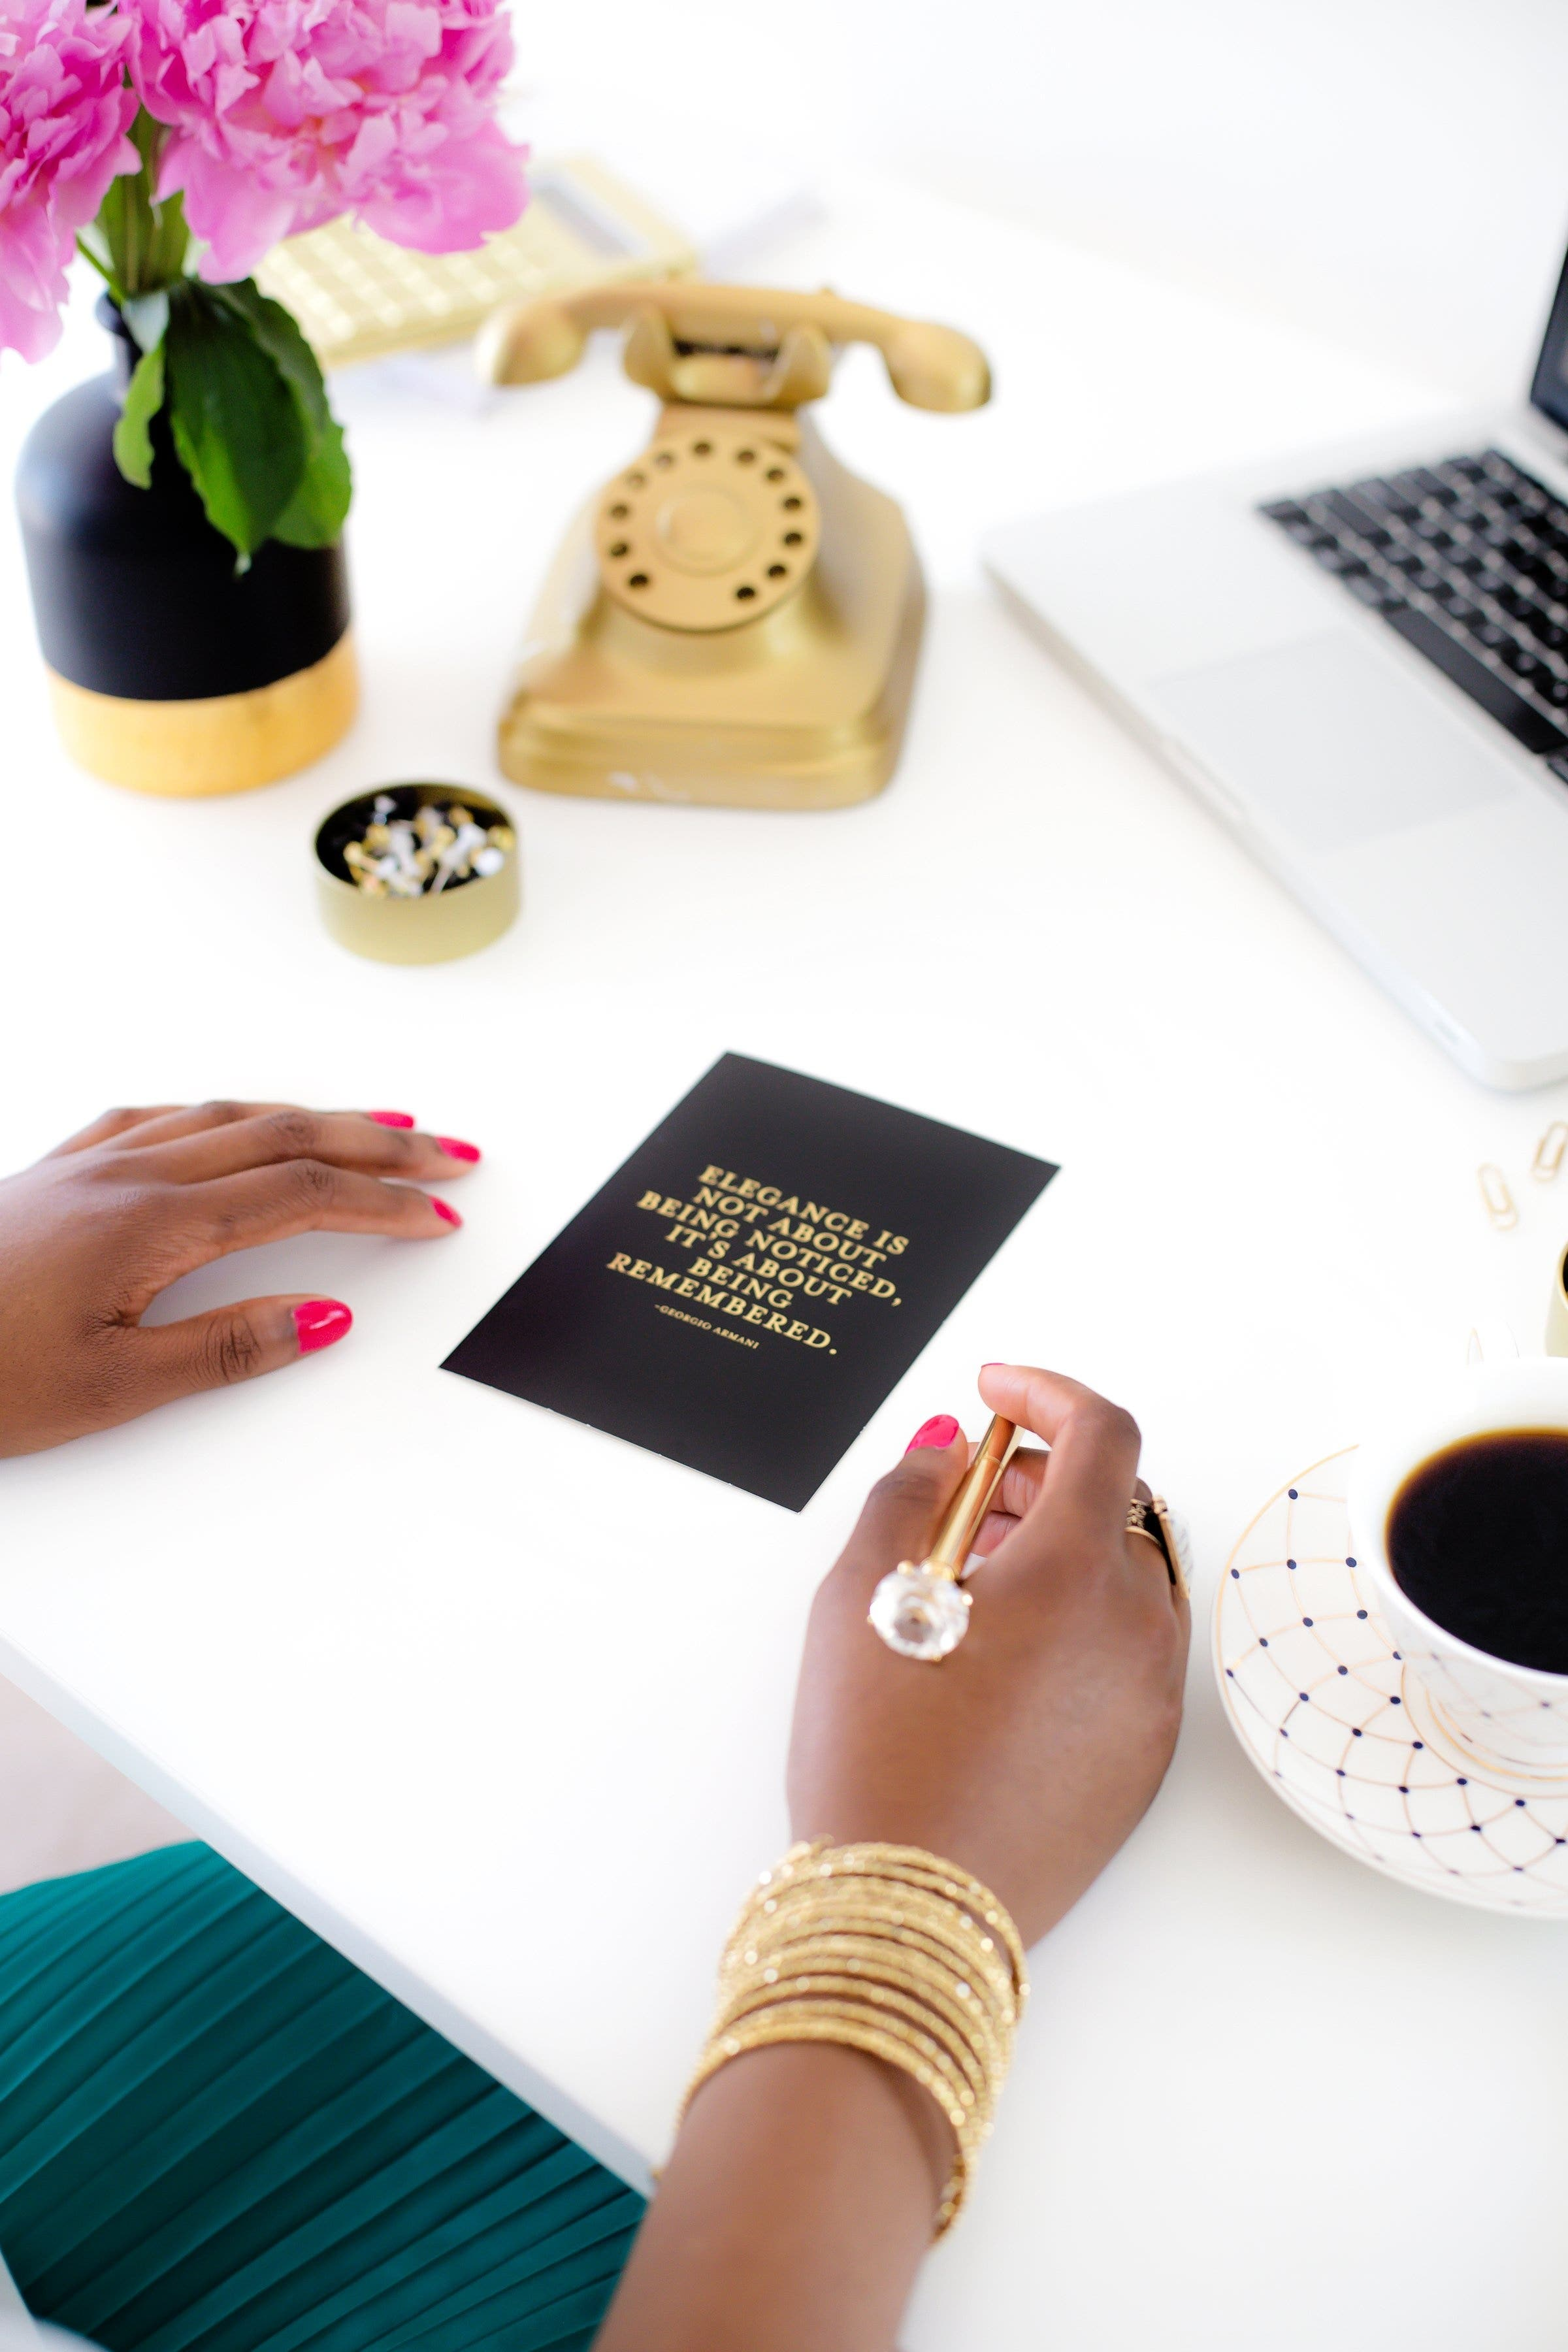 Boss Lady Resources